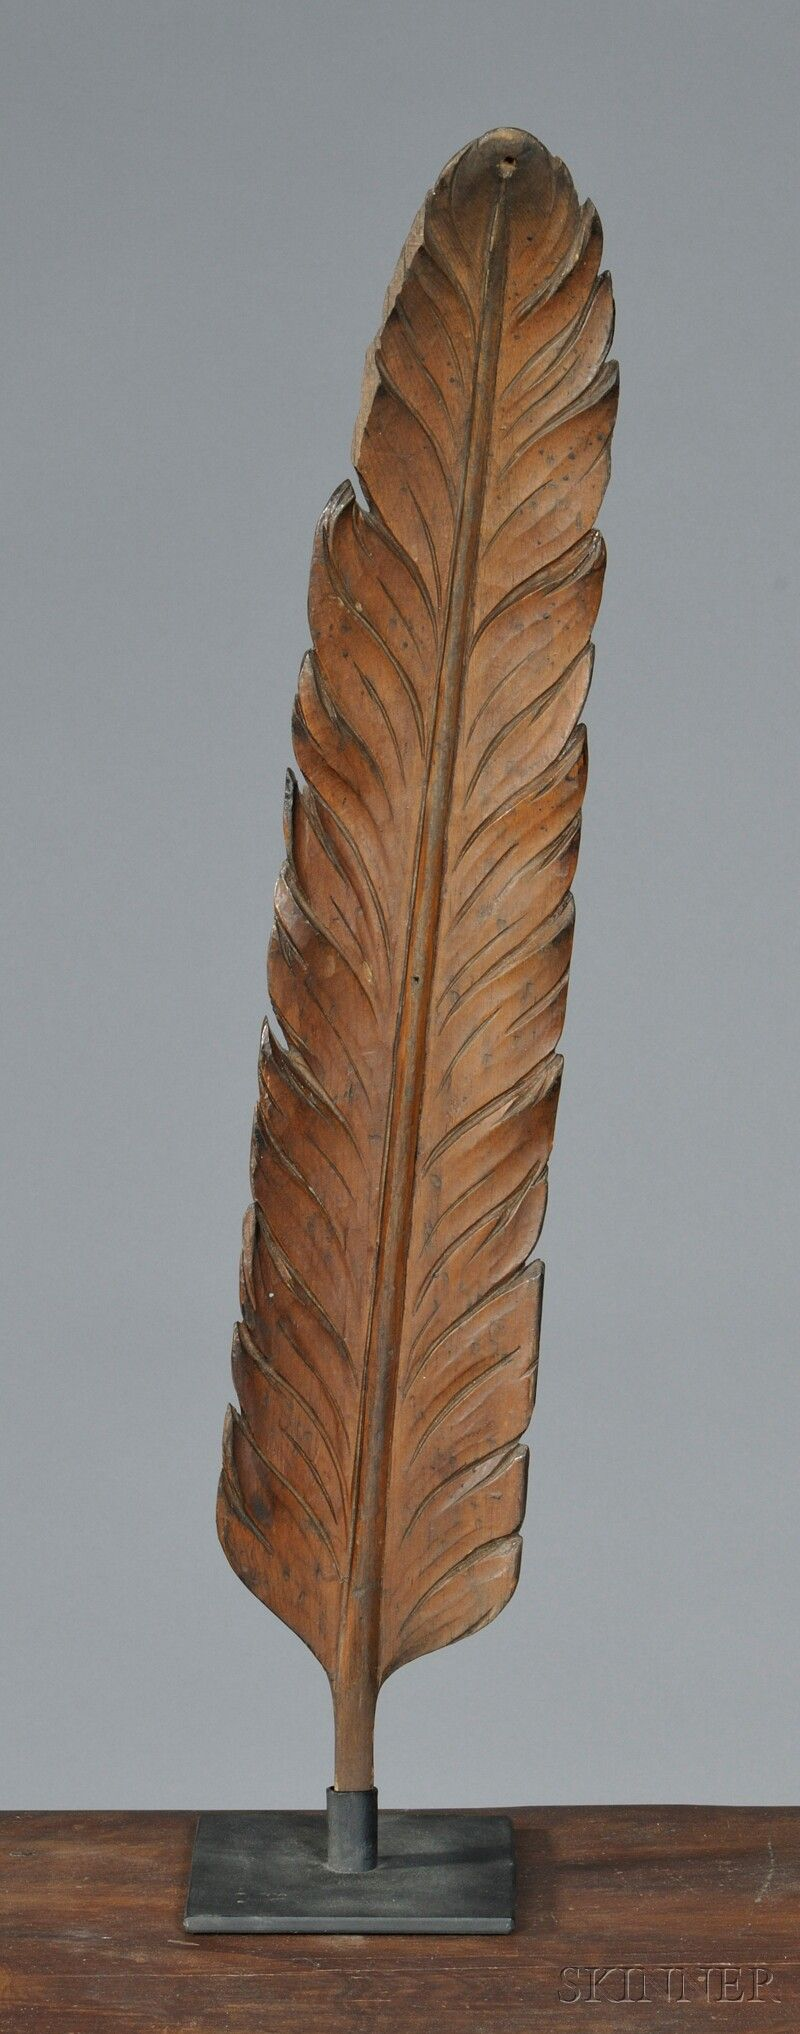 Carved Pine Feather, America, 19th century, carved in the round, with stand